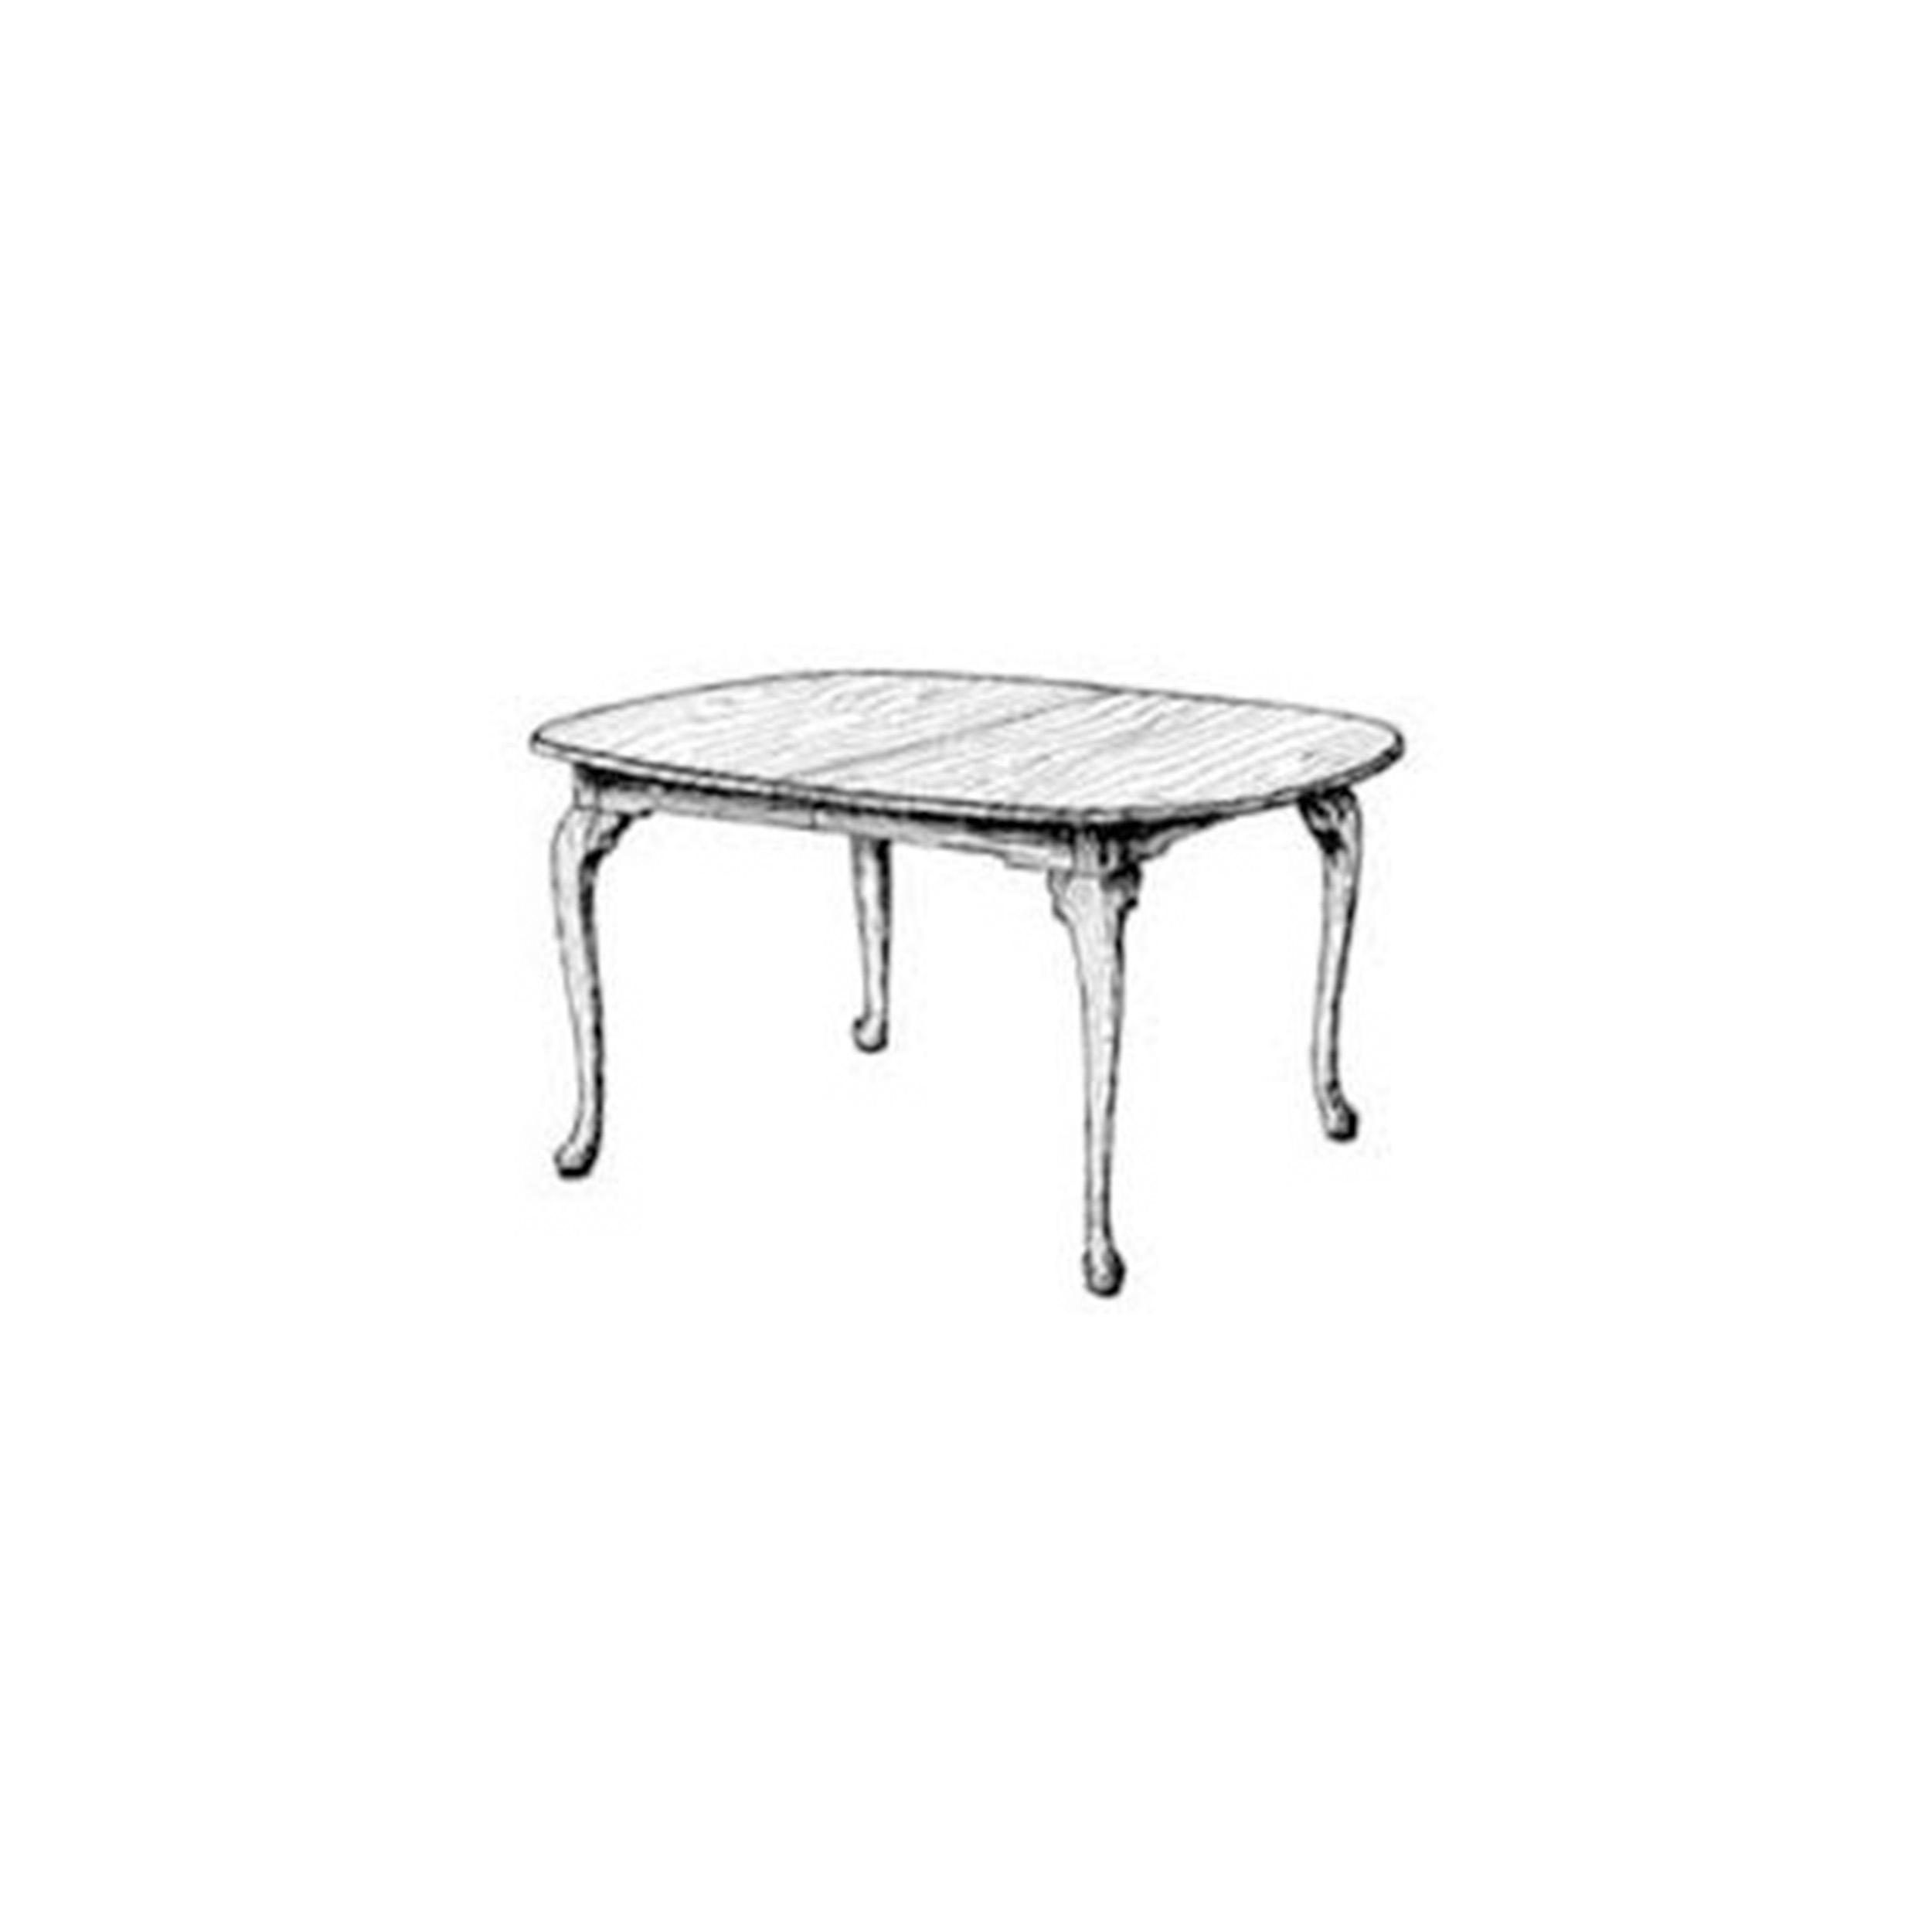 Woodworking Project Paper Plan to Build Queen Anne Dining Table